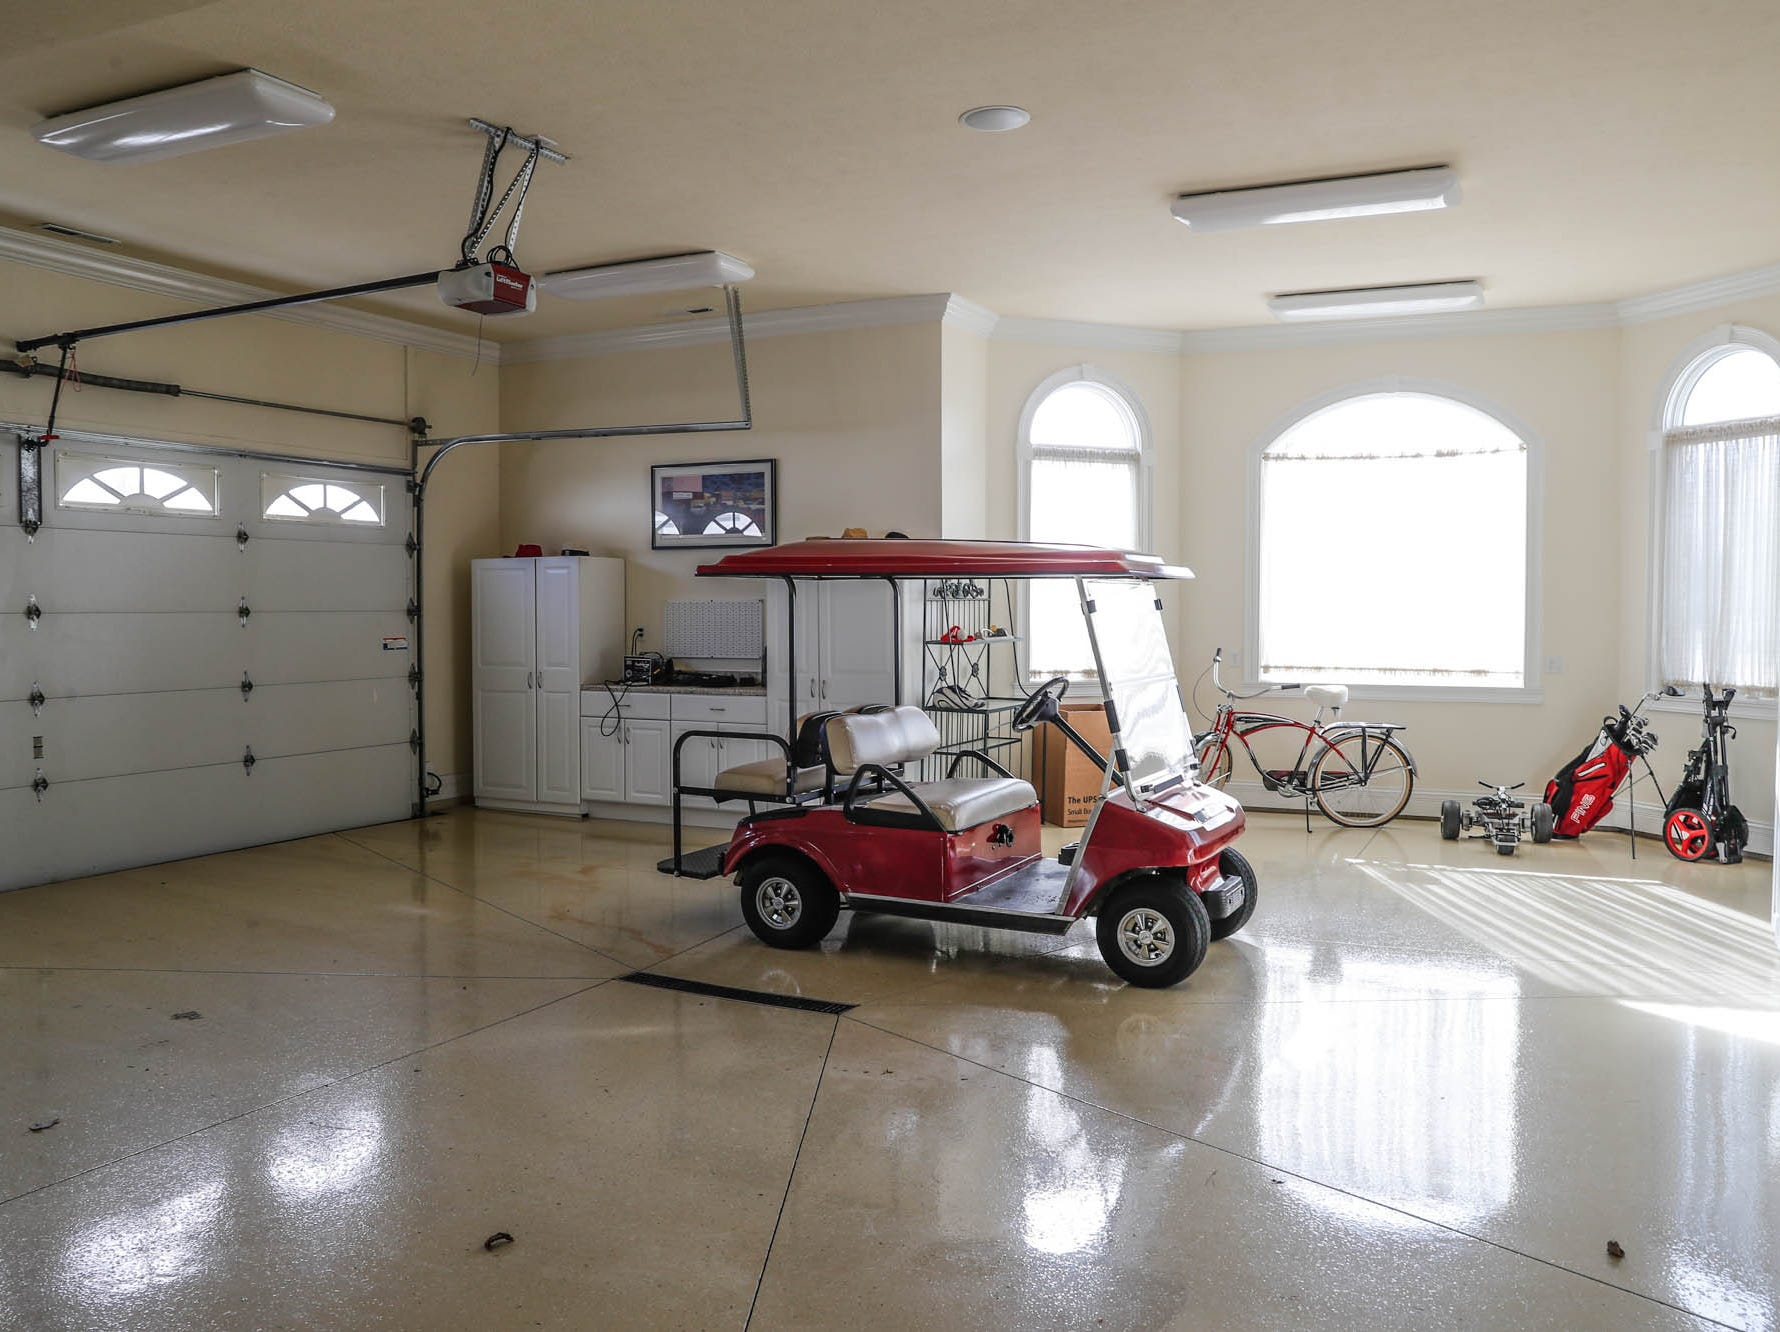 A Greenwood home up for sale at 1216 Stone Ridge Court, Greenwood, Ind., features an attached four car garage with custom epoxy floor, on Wednesday, Jan. 30, 2019. The home features 8,234 square feet, four bedrooms, two master suits, a 10 car garage, and exercise room.